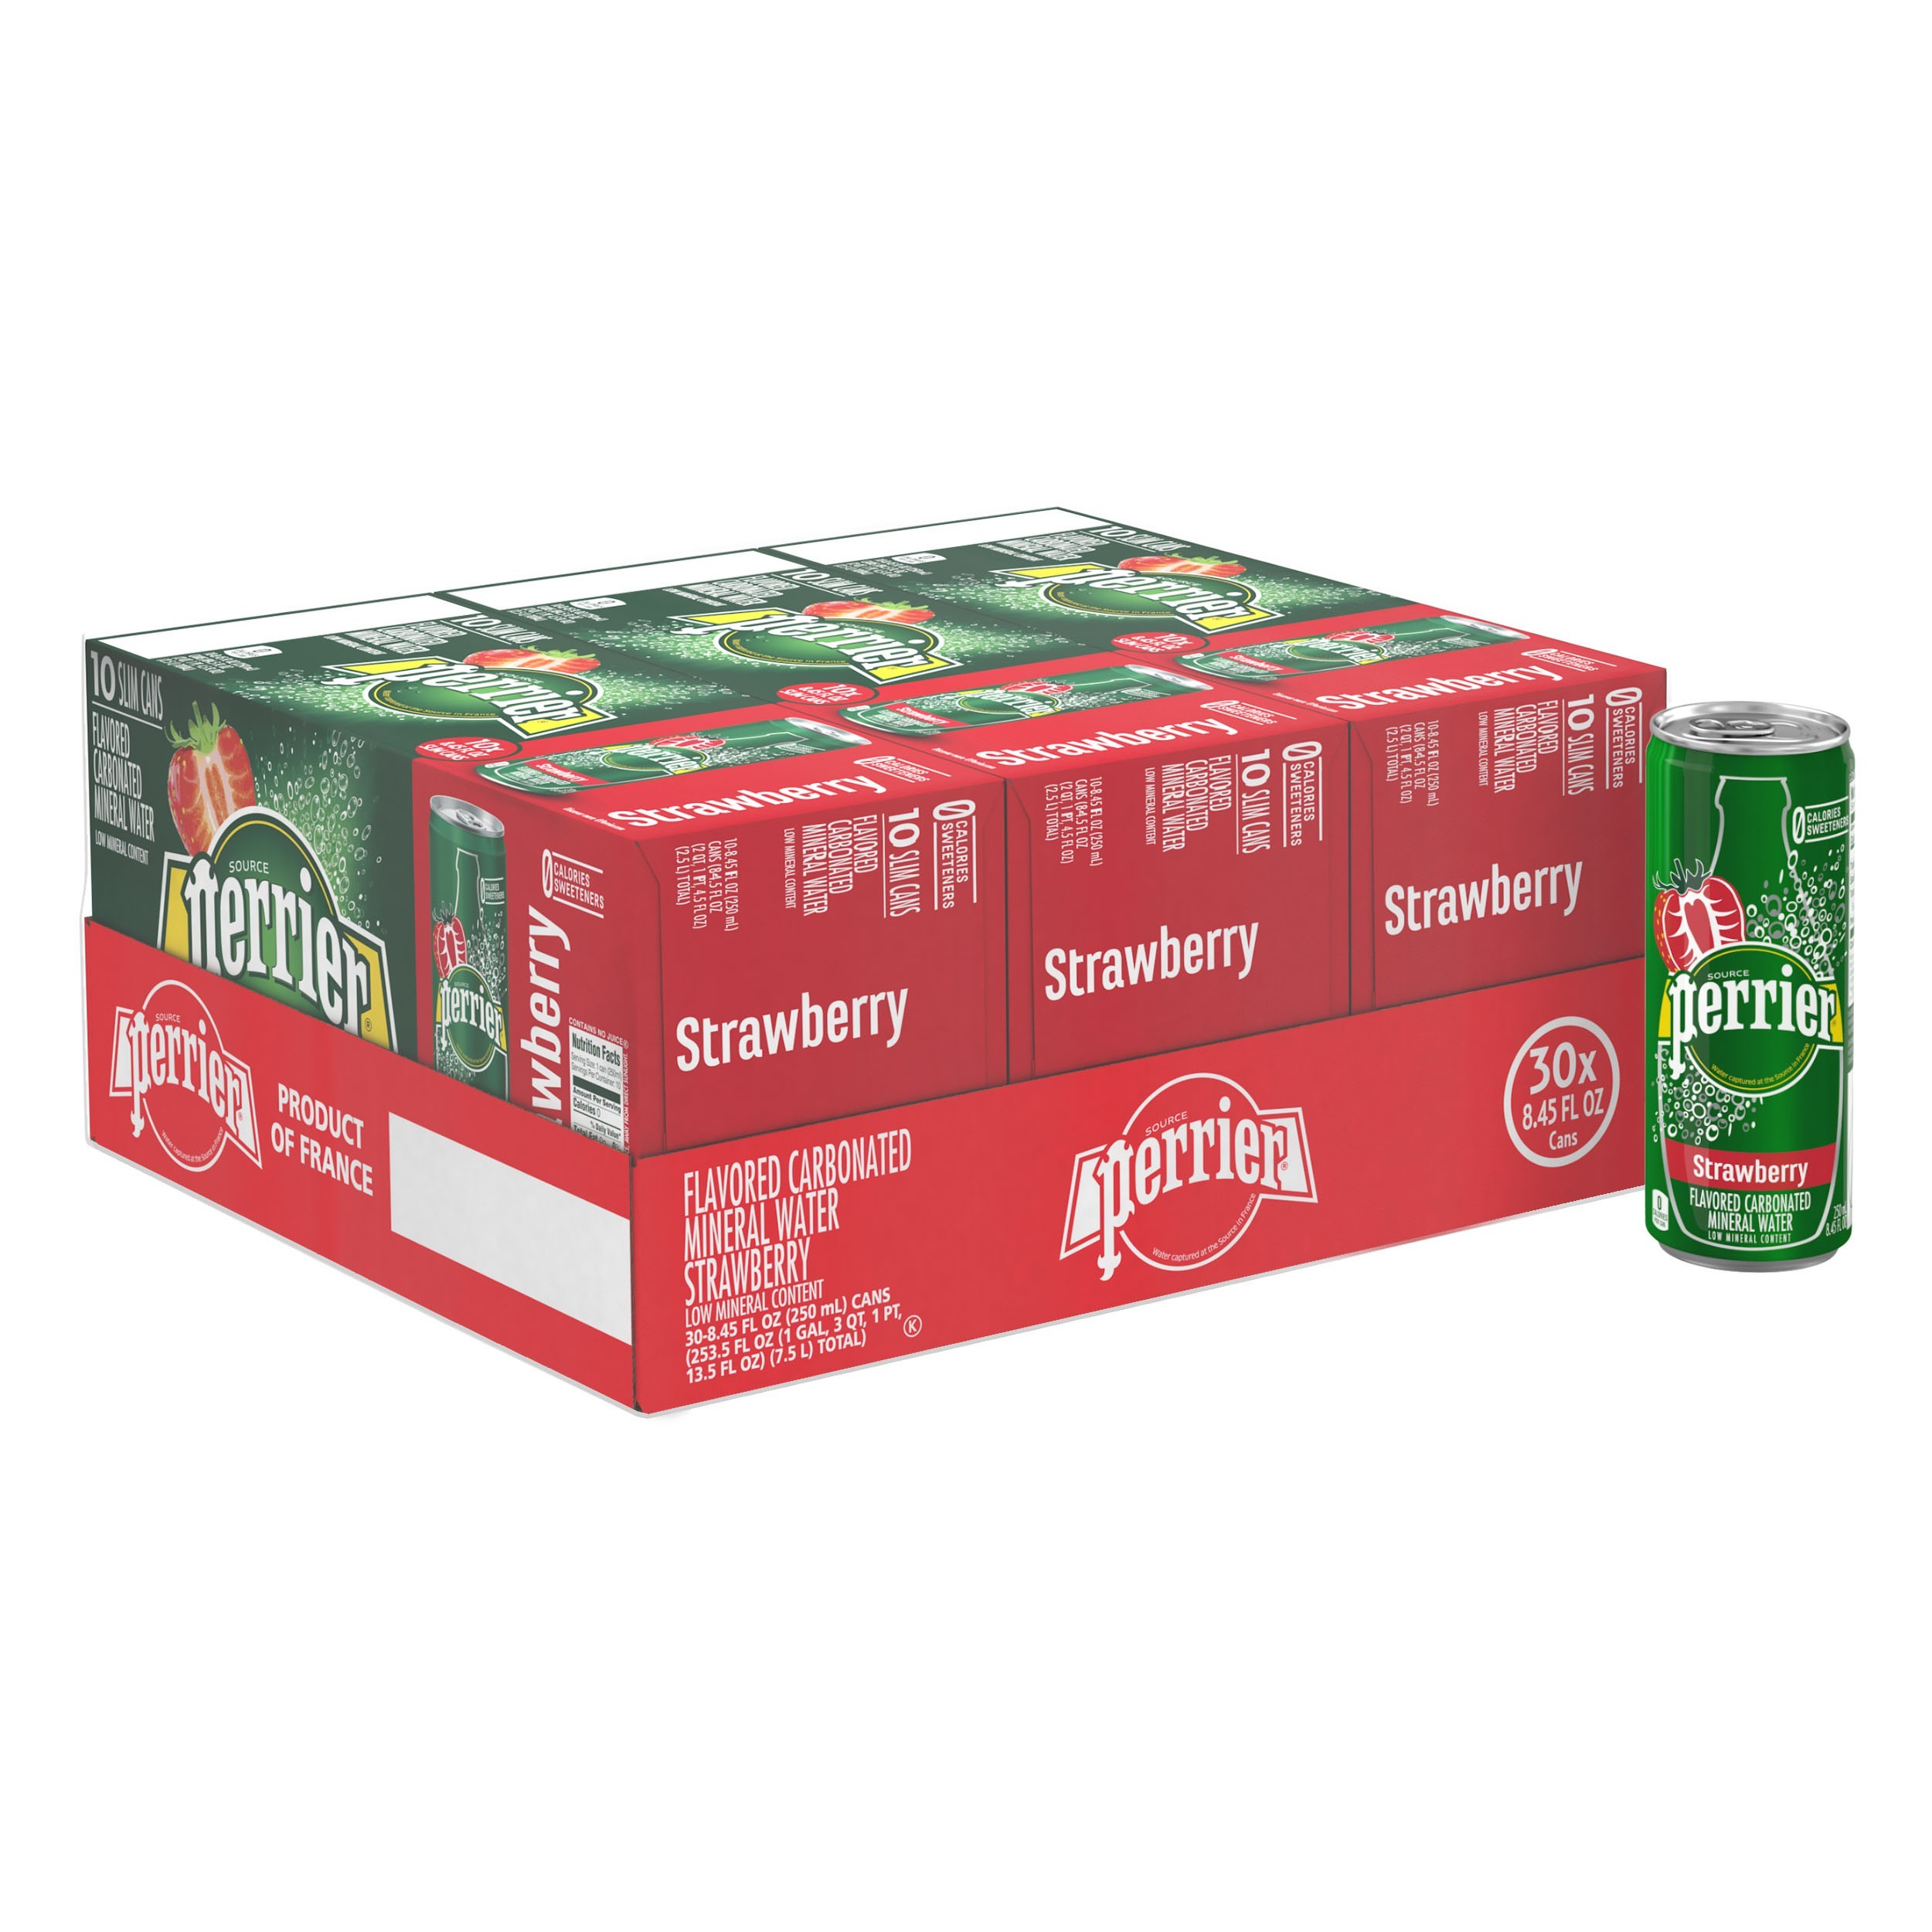 Sofa Paradies 2000 Perrier Strawberry Flavored Carbonated Mineral Water 8 45 Fl Oz Slim Cans 30 Count